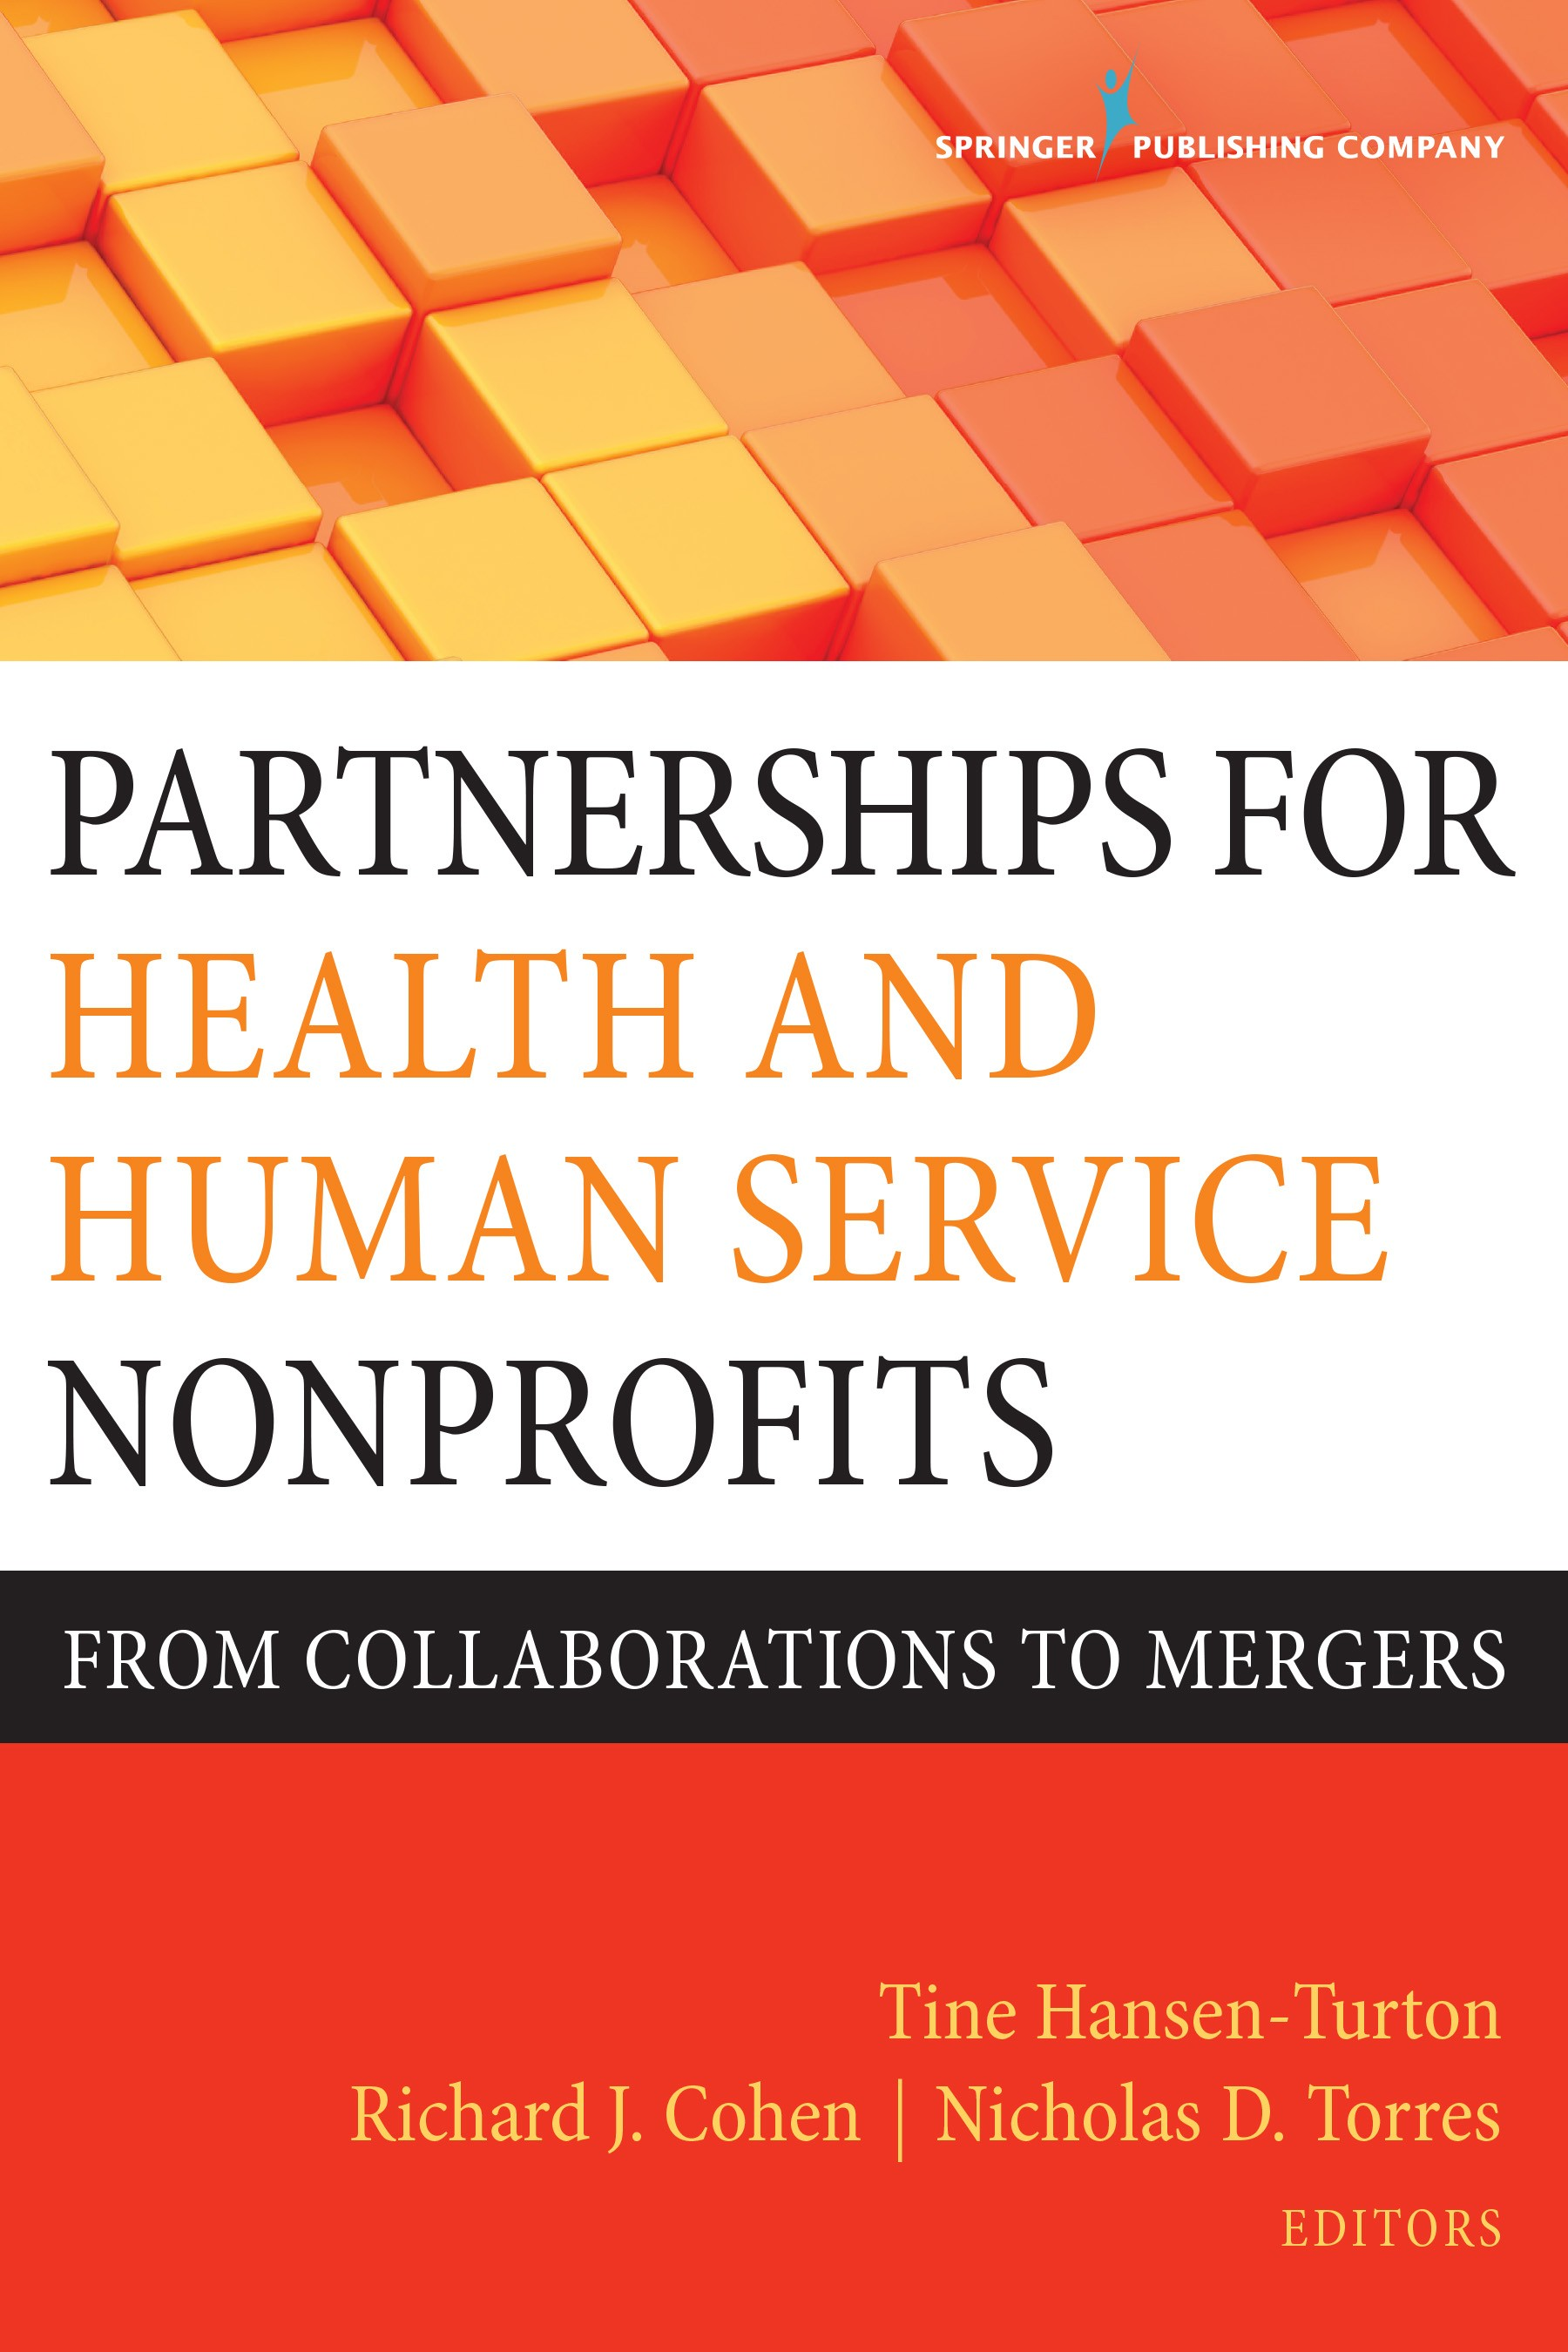 Partnerships for Health and Human Service Nonprofits: From Collaborations to Mergers